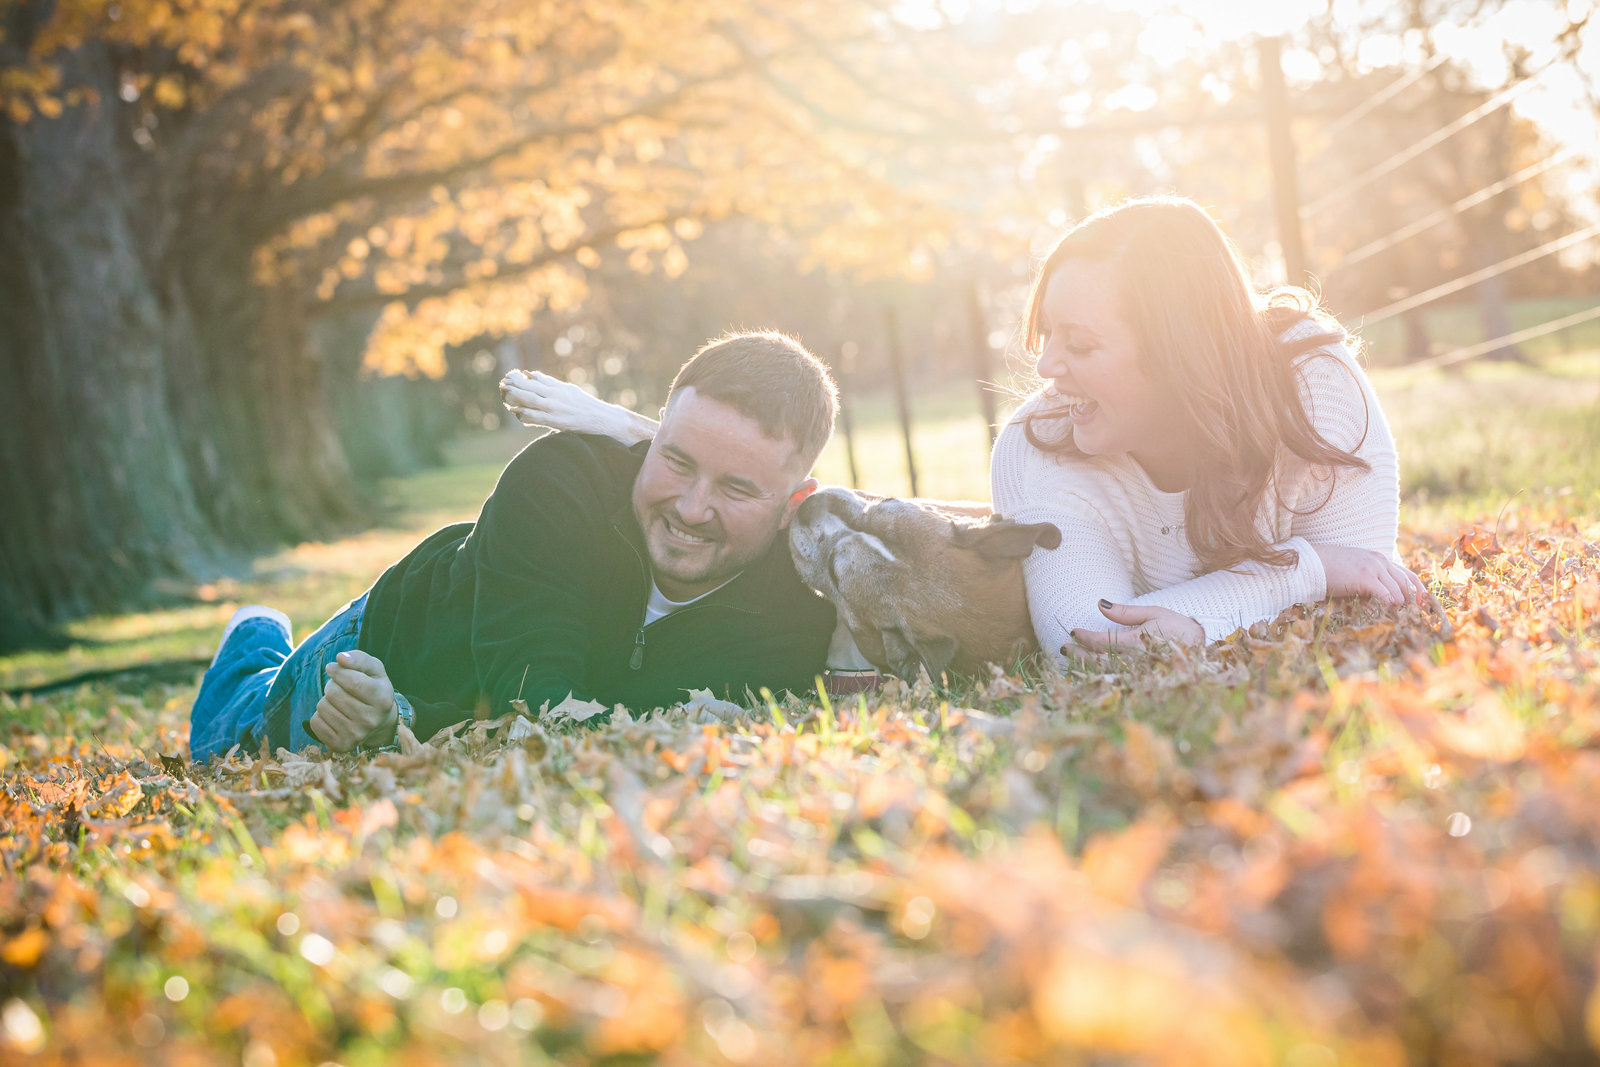 philadelphia-engagement-photographer-pennypark-dog